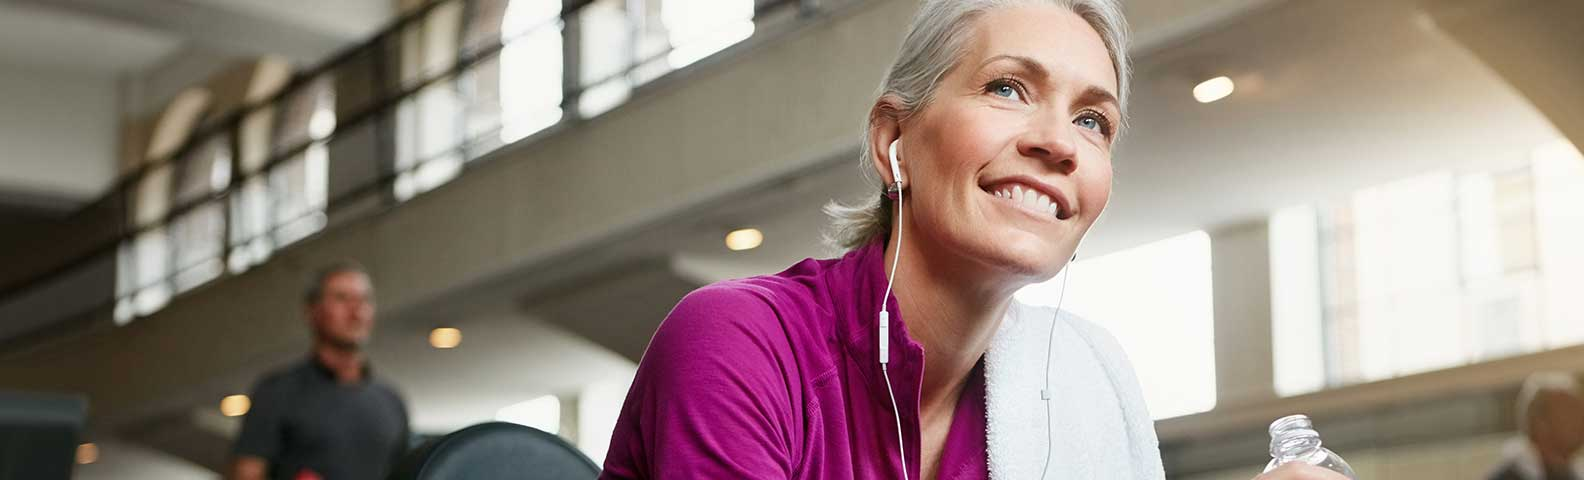 Woman working out to stay health to help prevent hearing loss